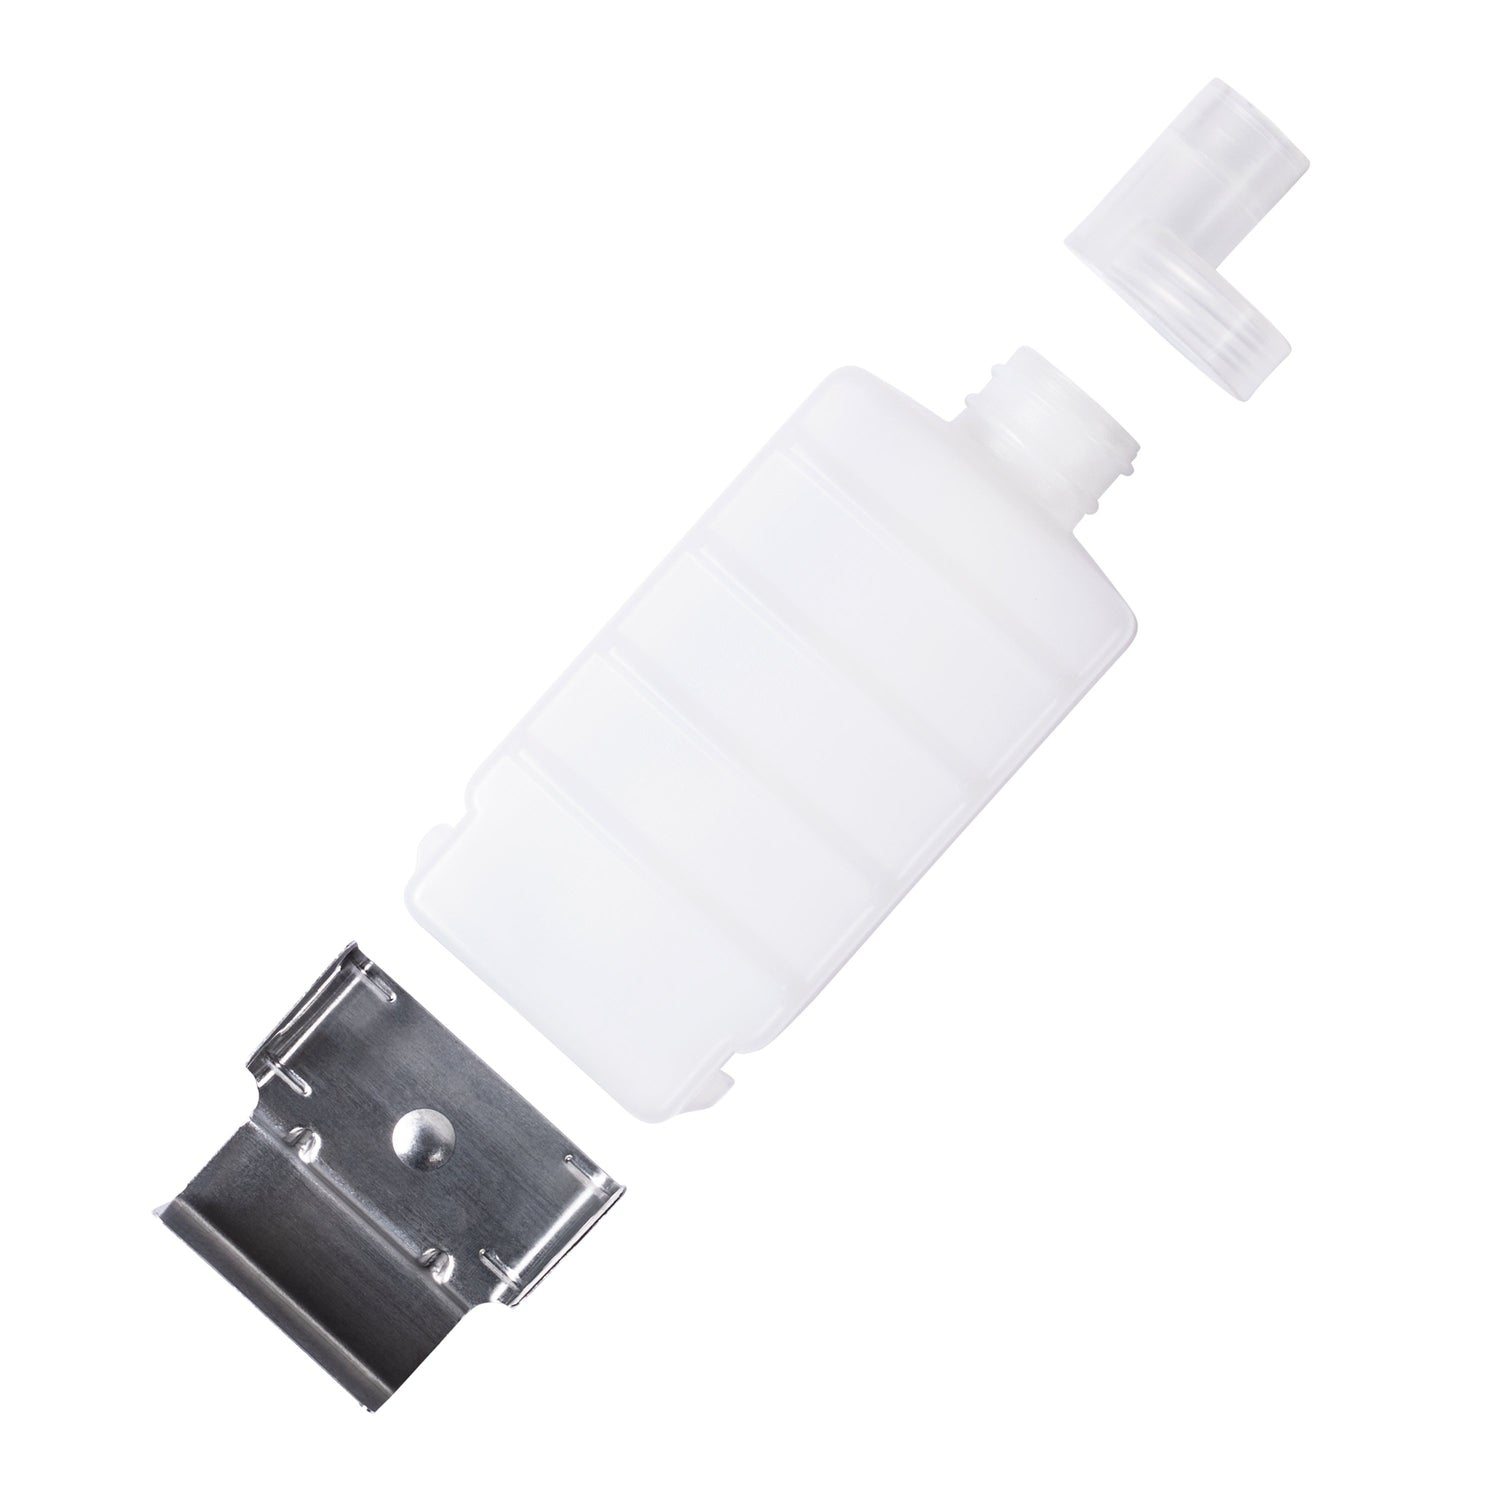 Toilet Bowl Cleaning Freshener Dispenser - Lasts 6 Weeks-Other Cleaning Supplies-Fuller Brush Company